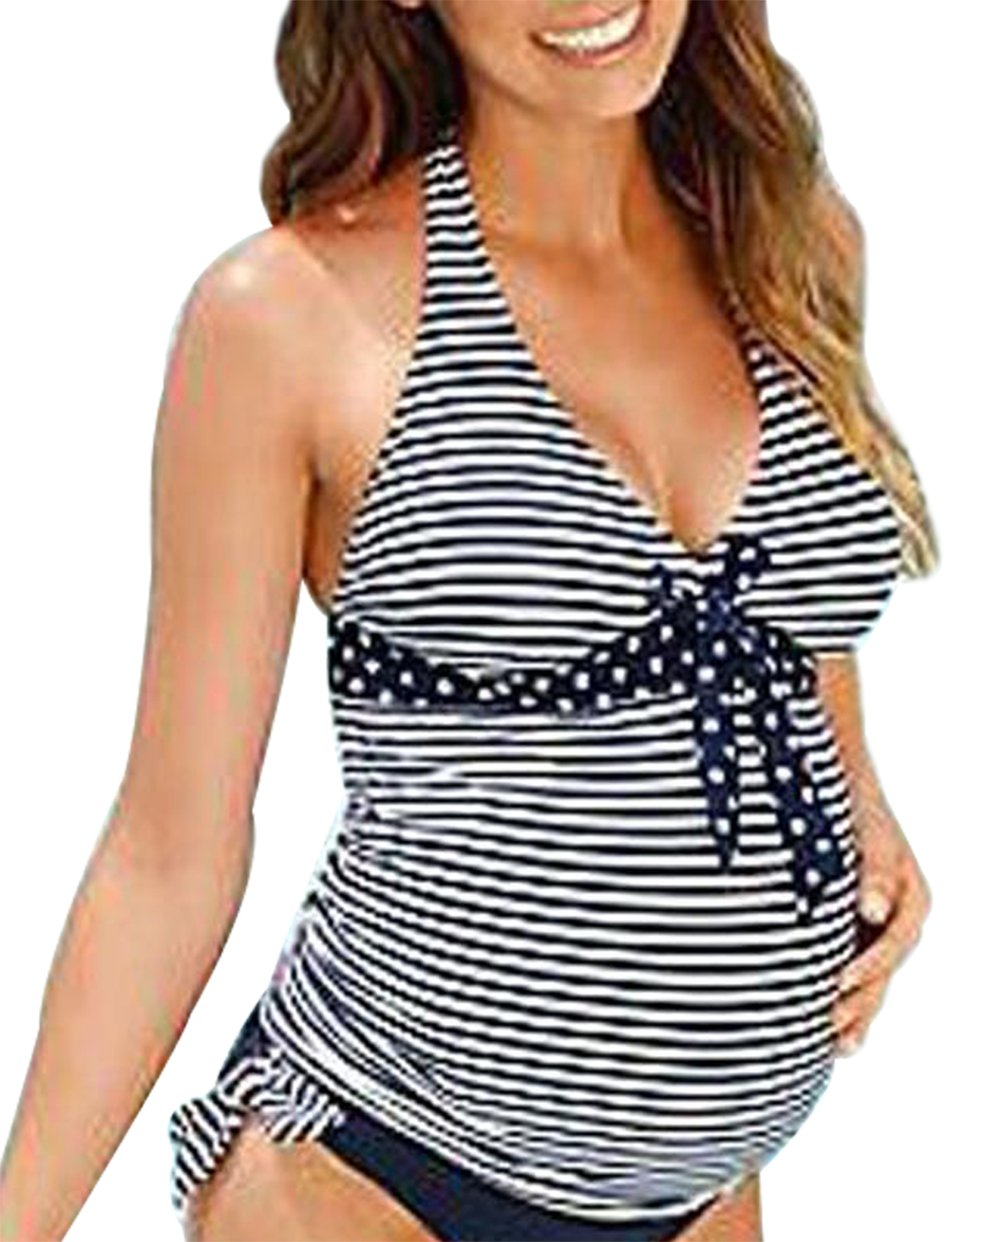 JINTING Striped Maternity Tankini Halter Two Piece Maternity Tankini Swimsuit for Women Size XL (Black)